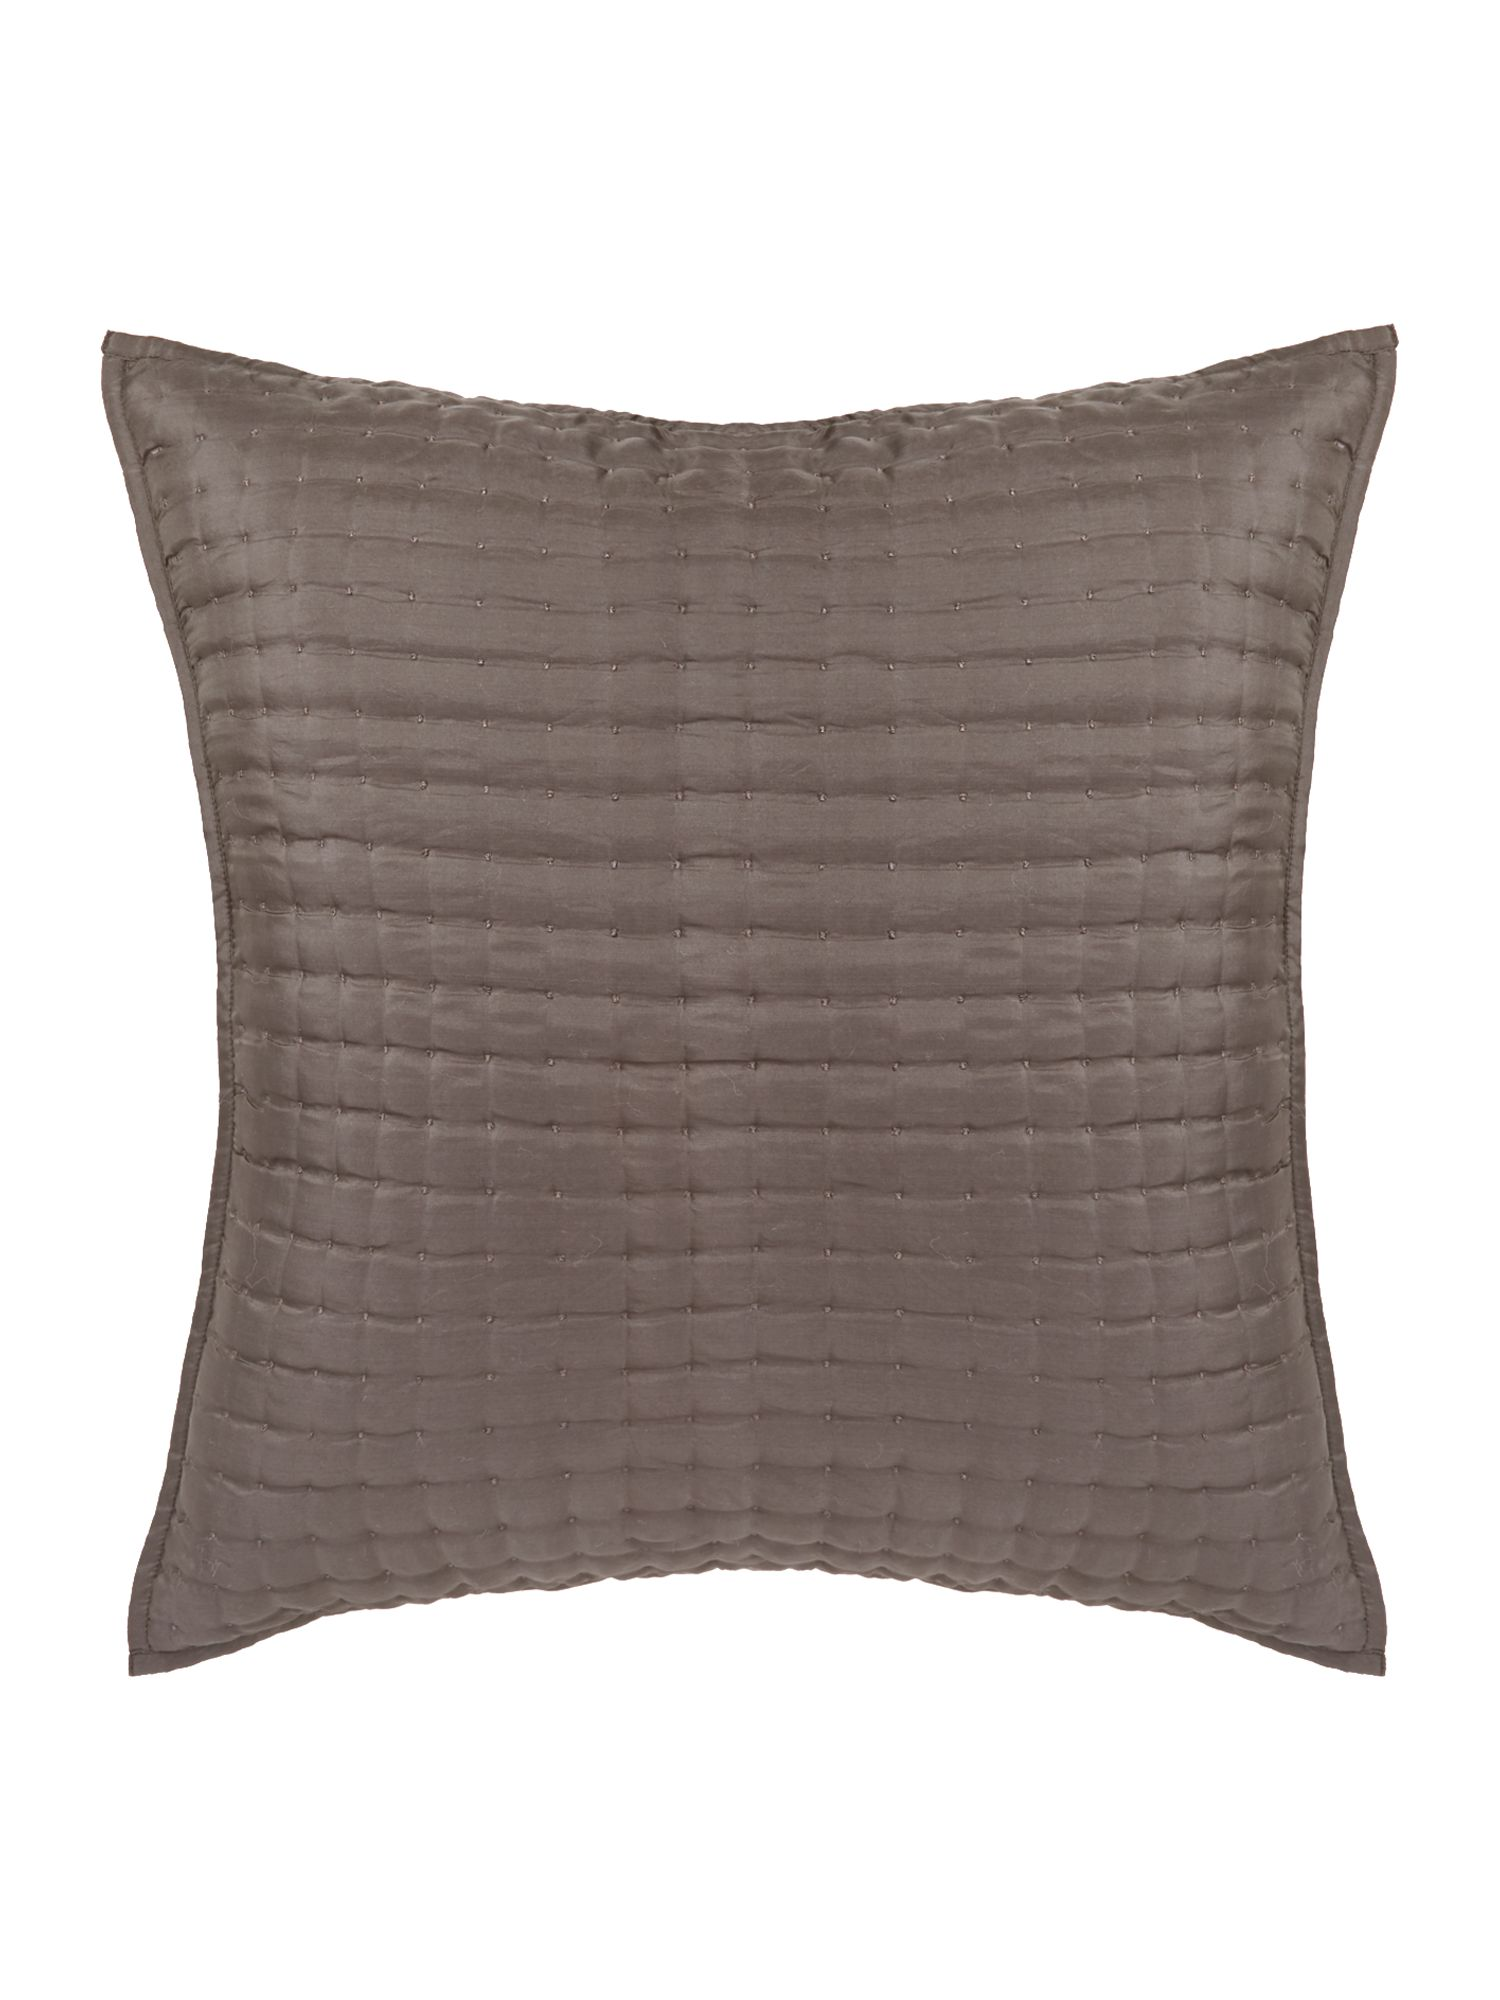 Pewter silk sham